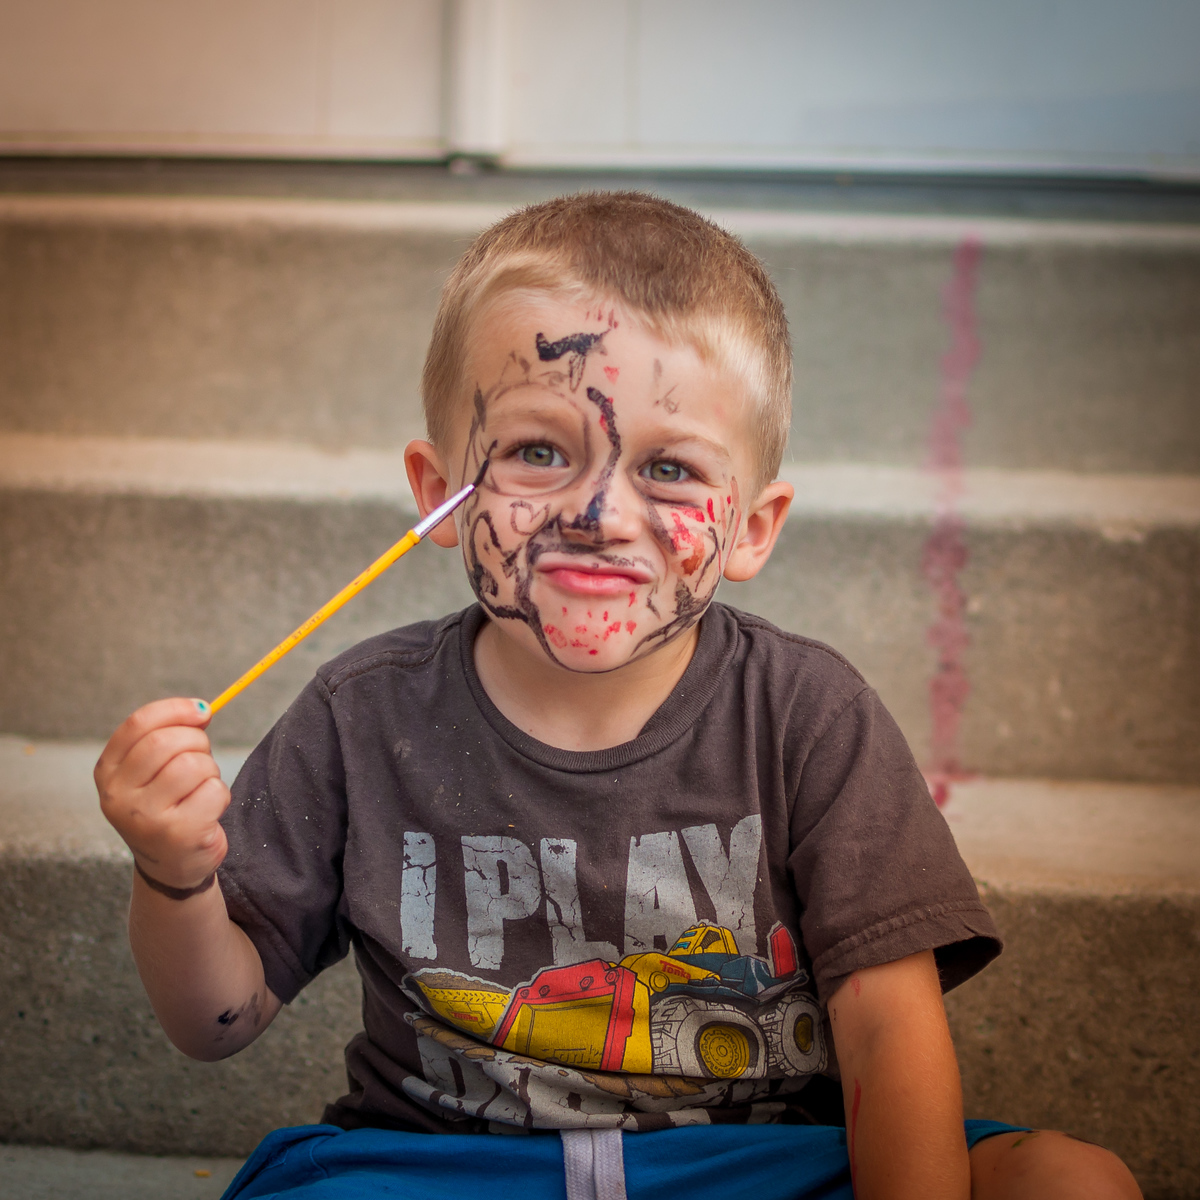 Kids Face Painting - August 6